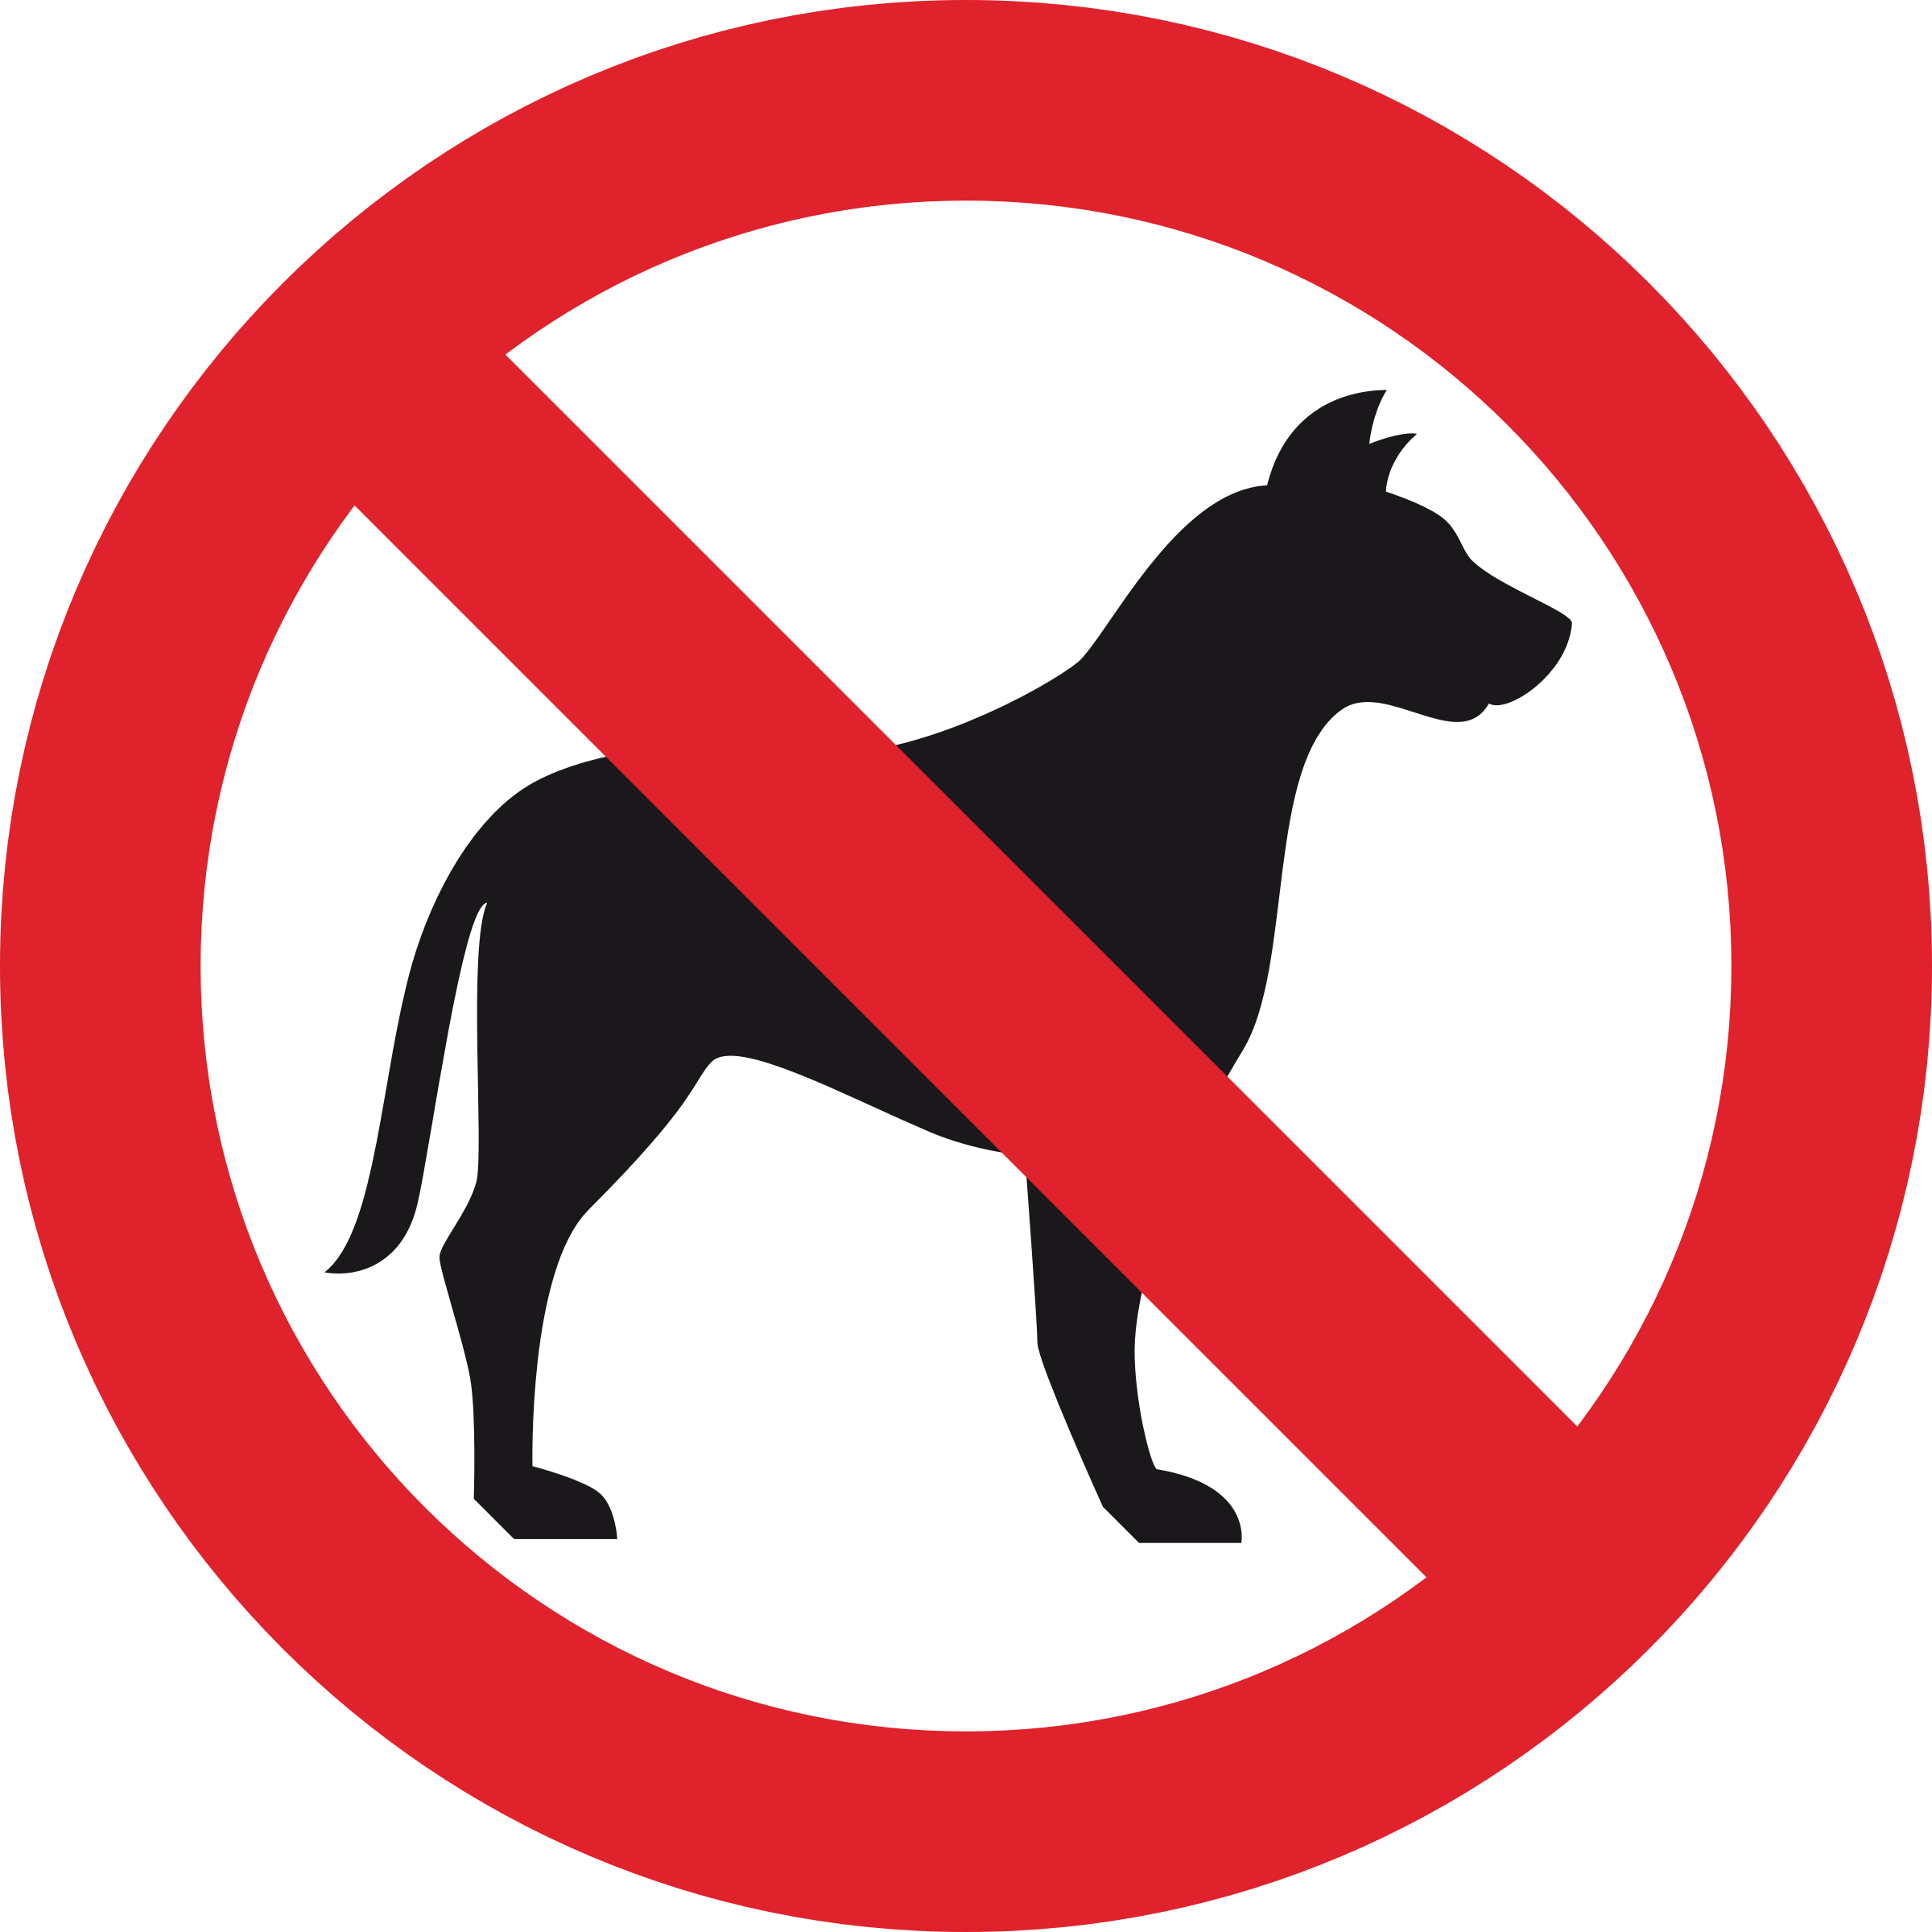 No Dogs Vector file image.